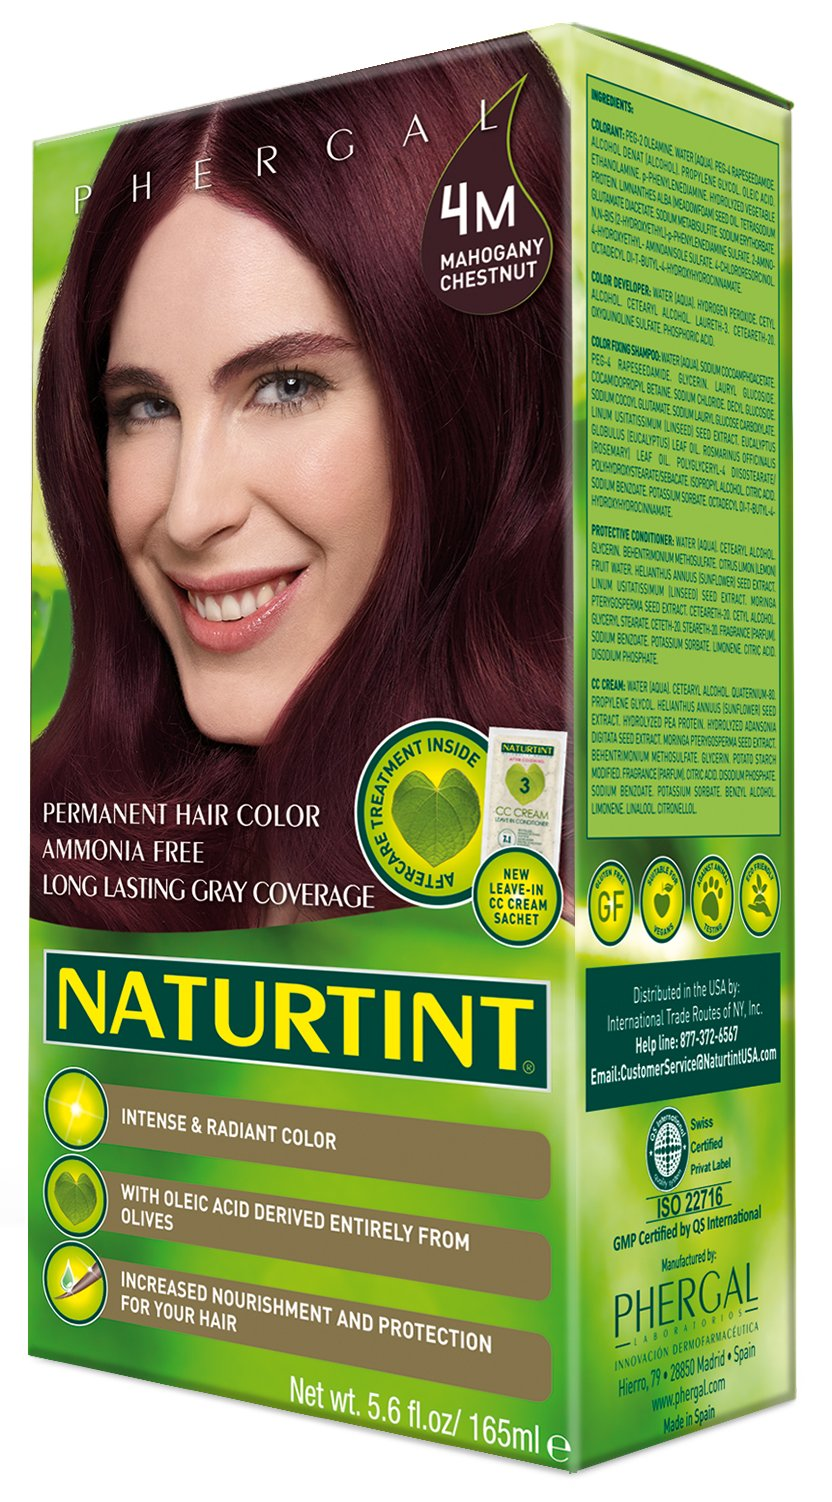 Naturtint Permanent Hair Color - 4M Mahogany Chestnut, 5.6 Fluid Ounce (Pack of 6) by Naturtint (Image #3)